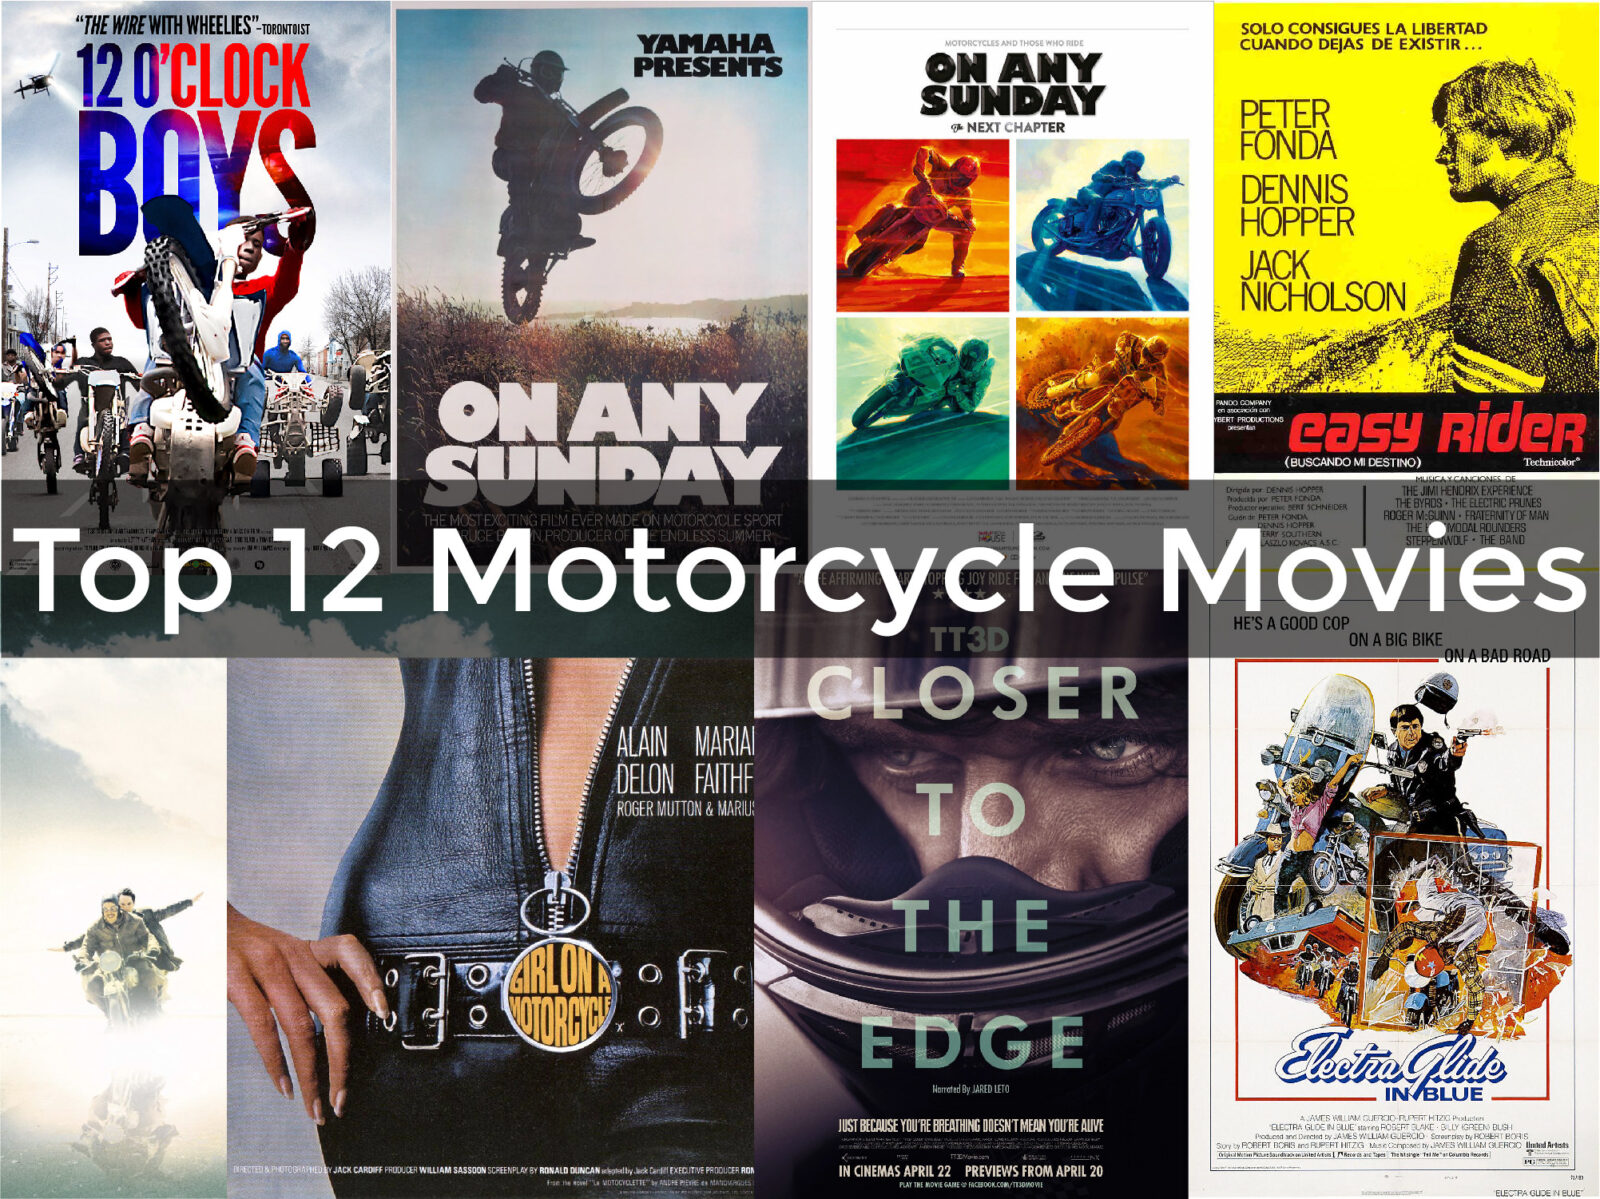 Top 12 Motorcycle Movies 1600x1199 - Top 12 Motorcycle Movies